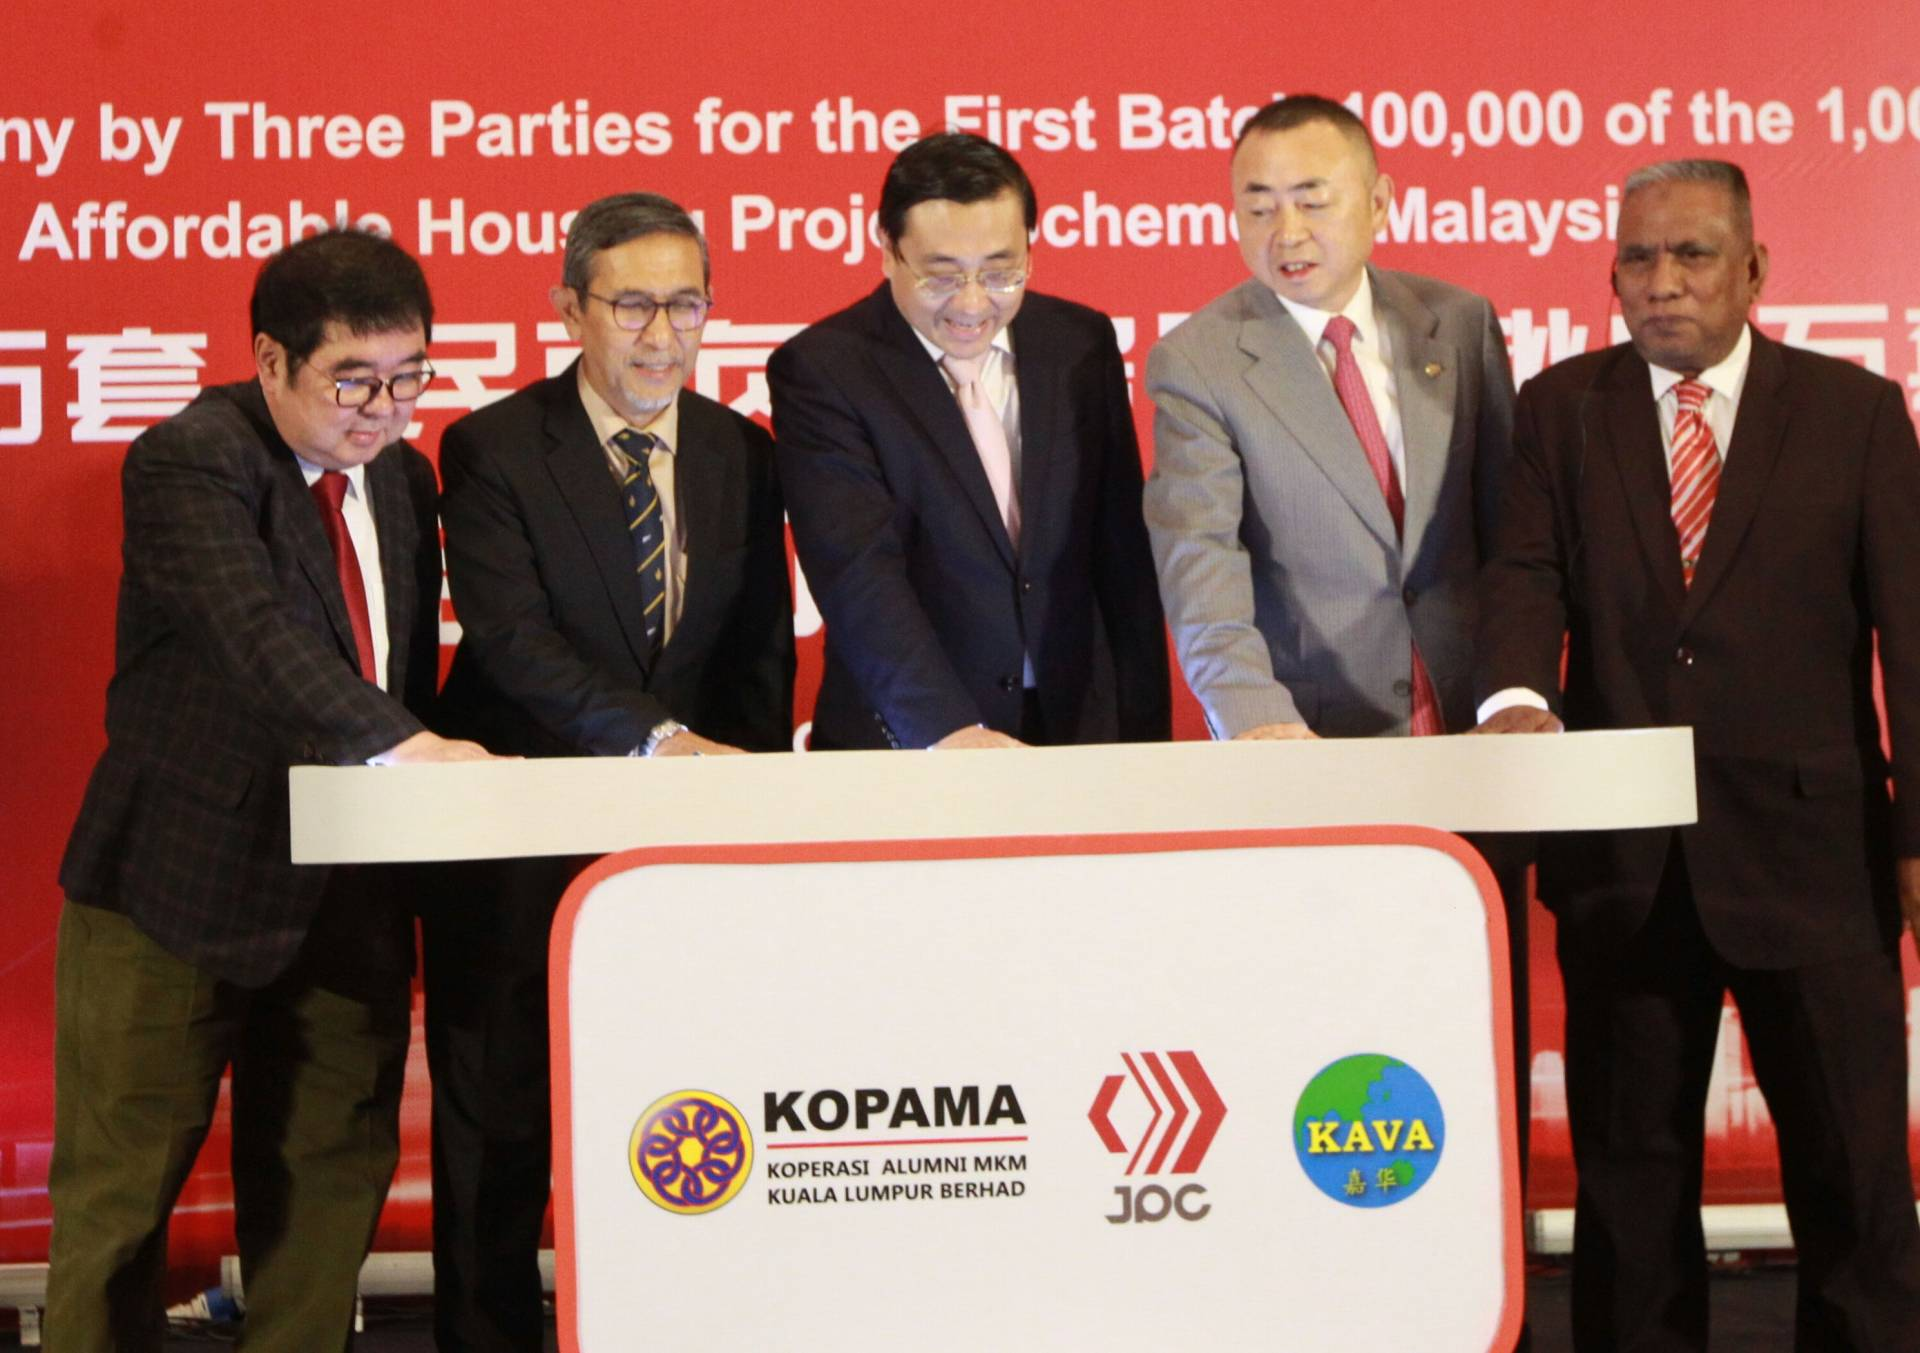 China Based Construction Firm To Build Affordable Homes In Malaysia The Star